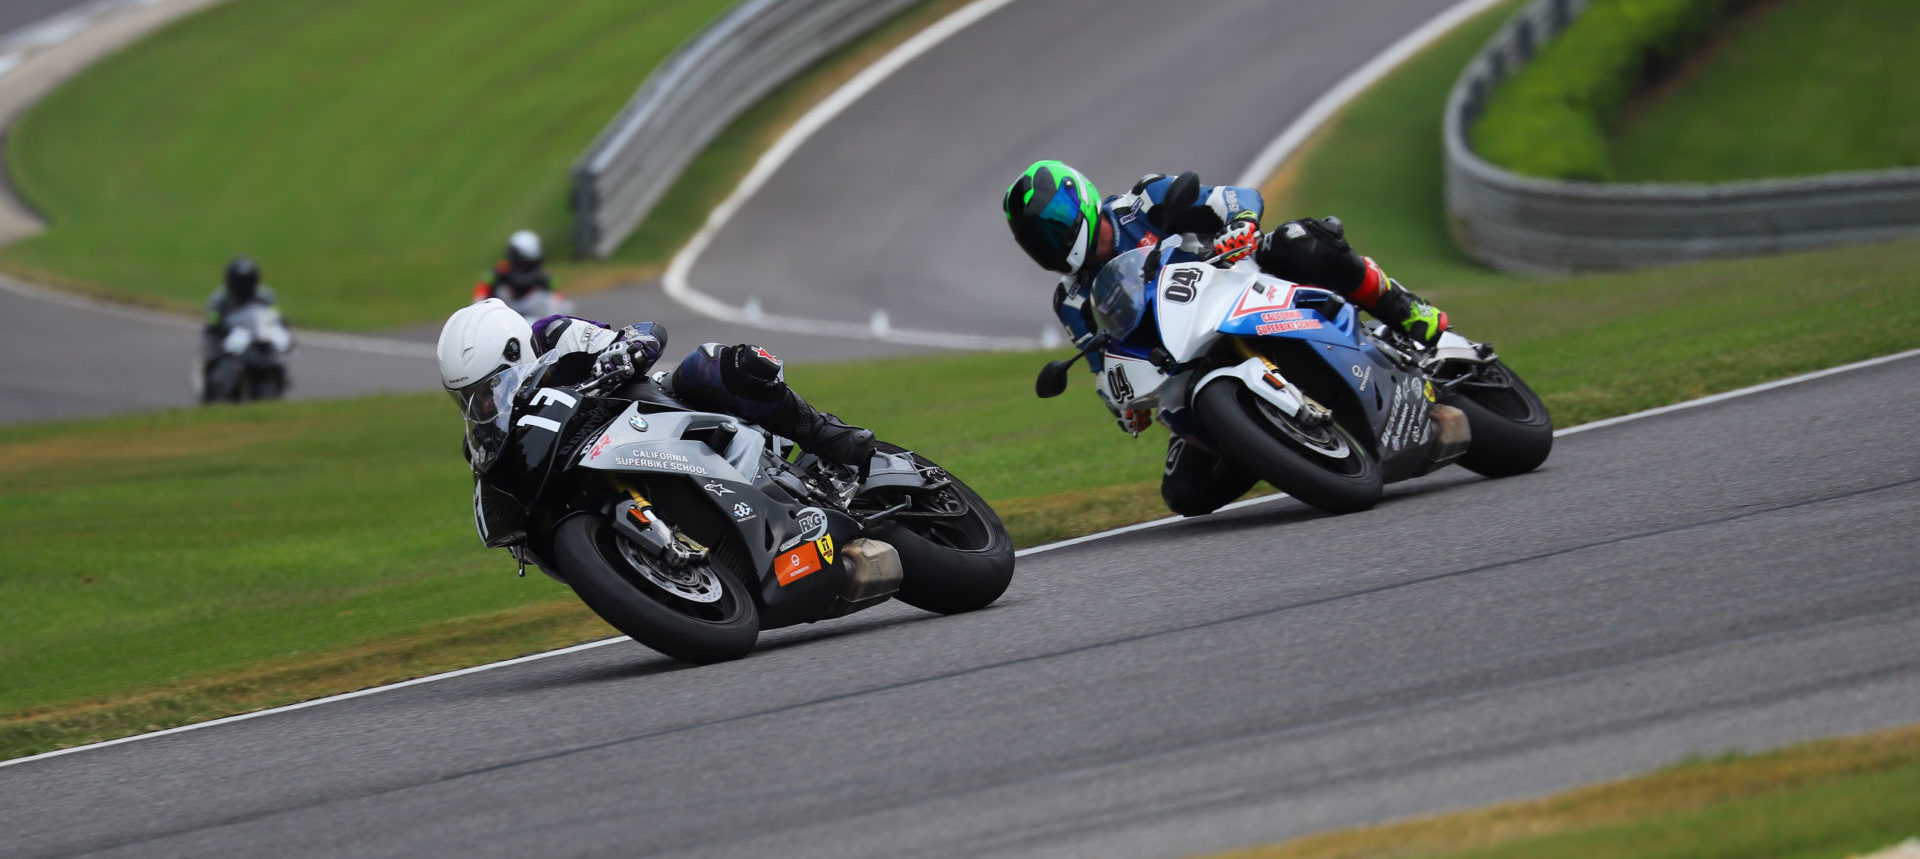 A California Superbike School student (17) and instructor (04) in action at Barber Motorsports Park Photo by etechphoto.com.